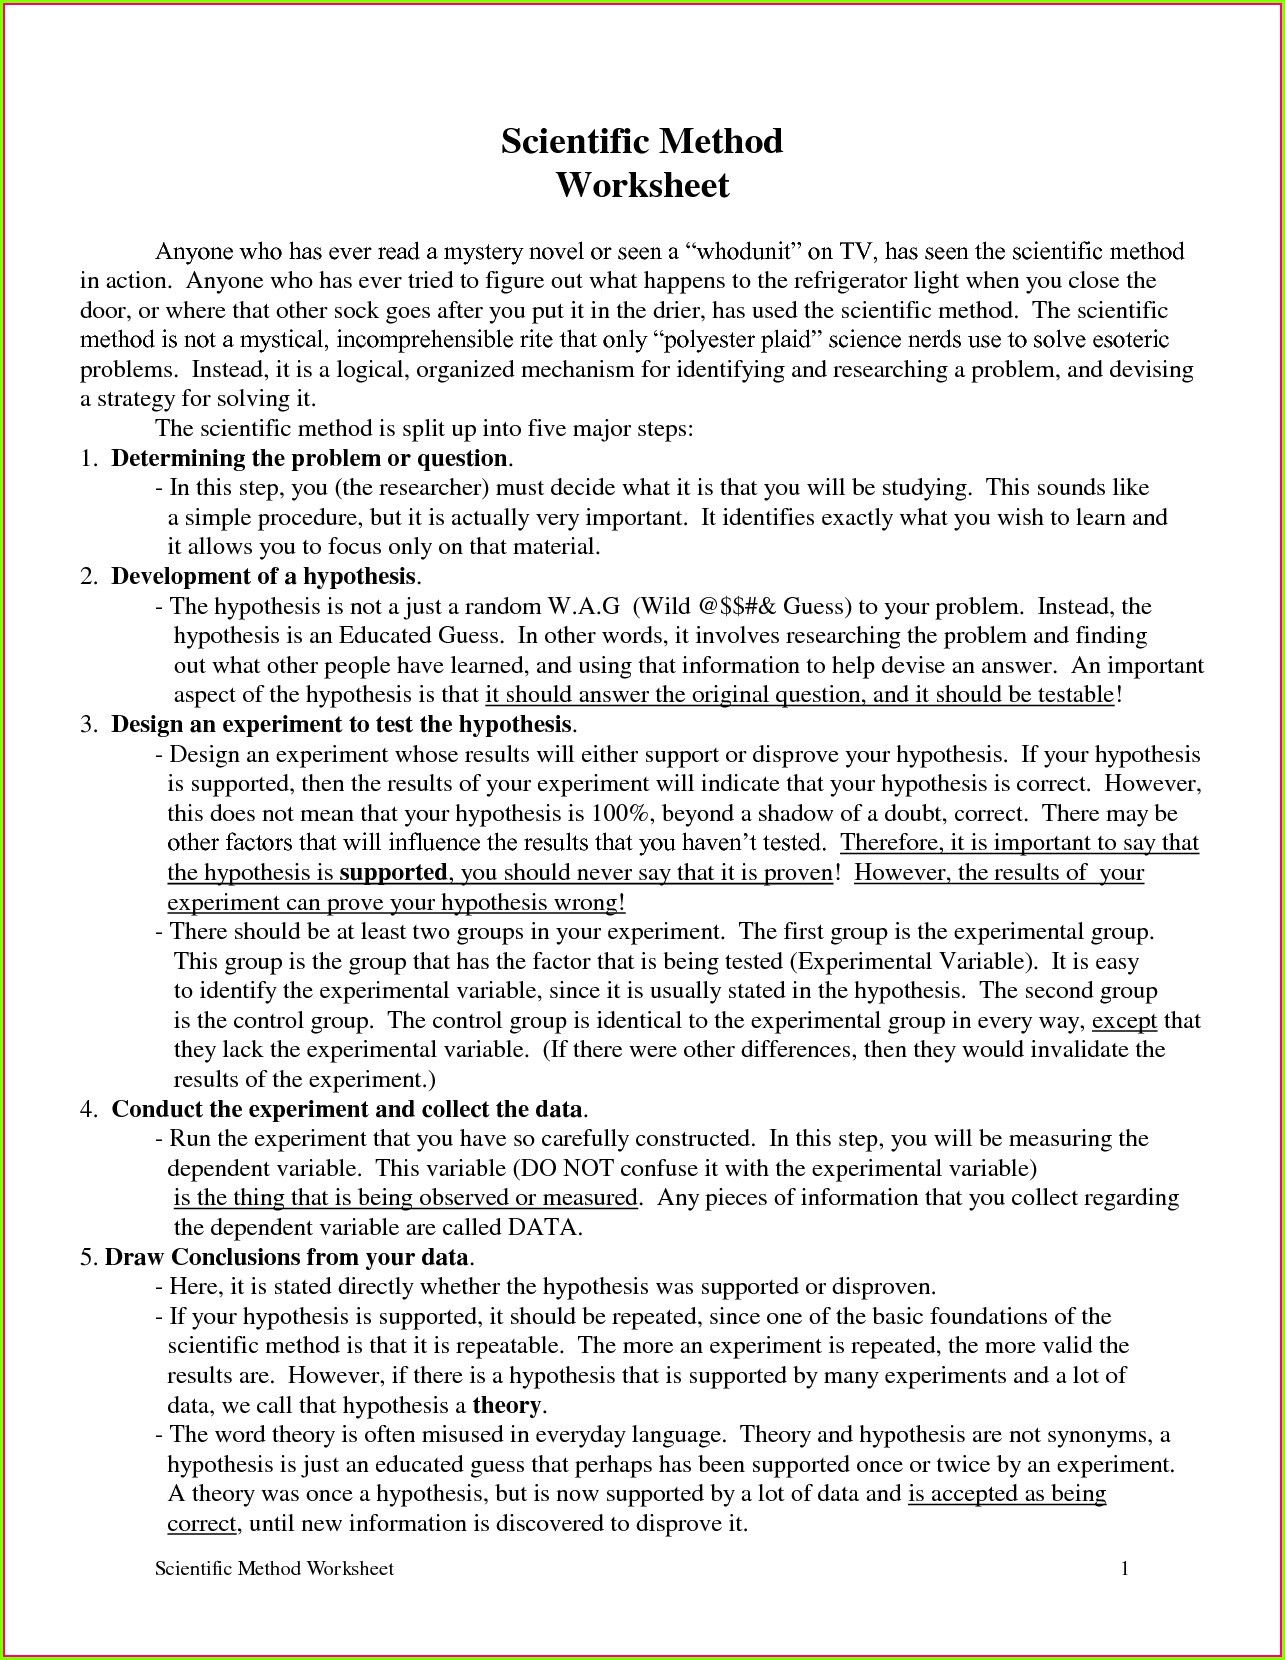 Scientific Method Worksheets High School Exploring the Scientific Method Worksheet